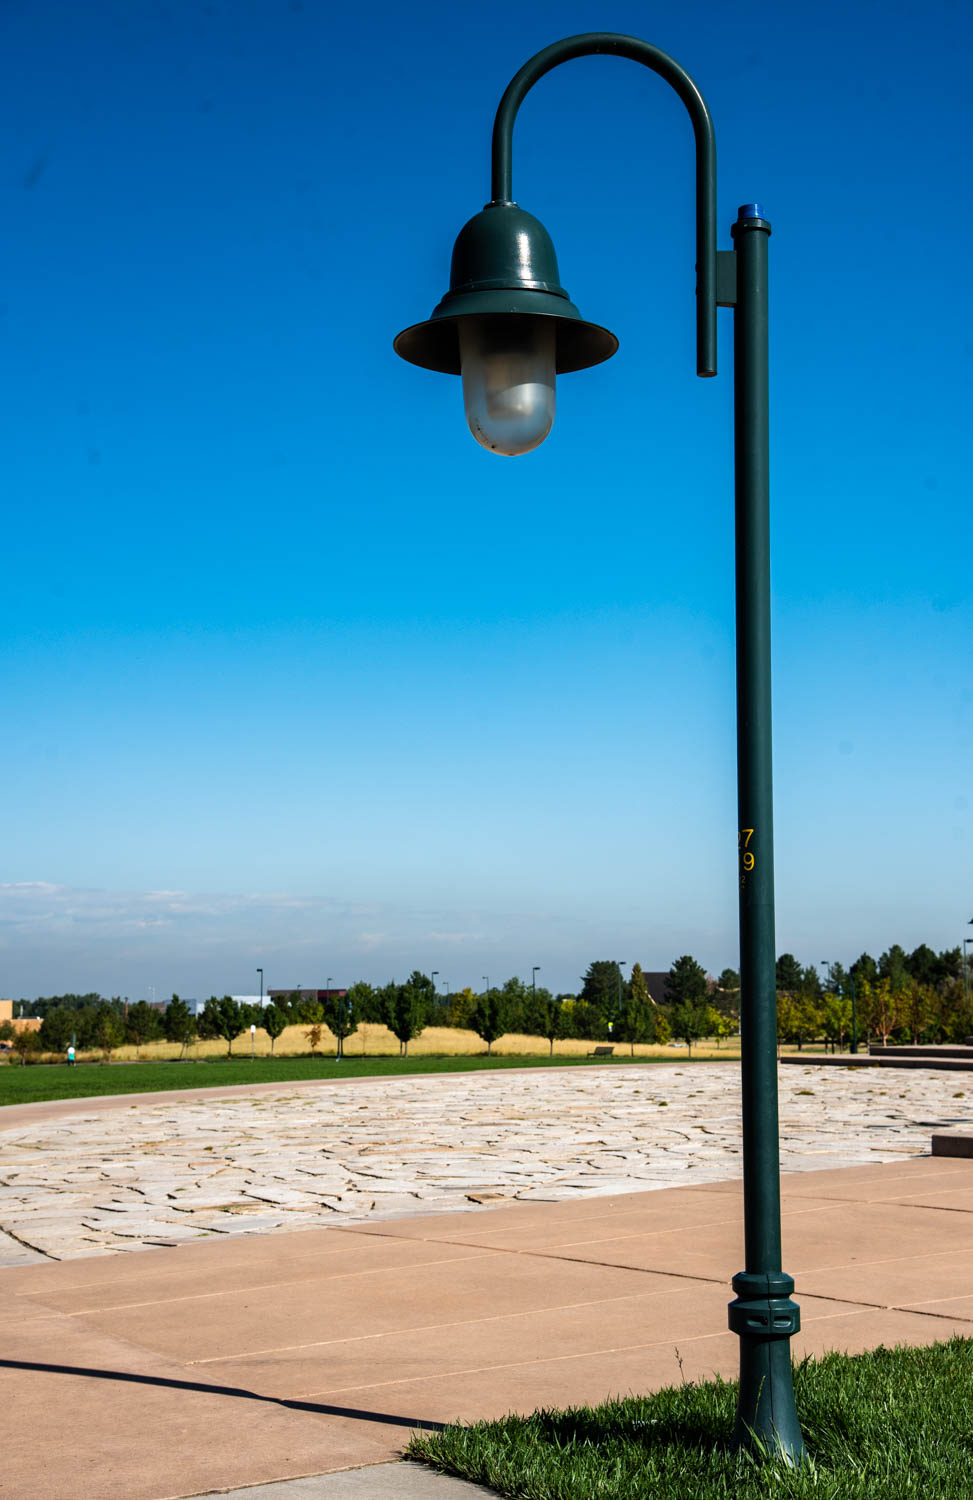 Lamppost in a Park